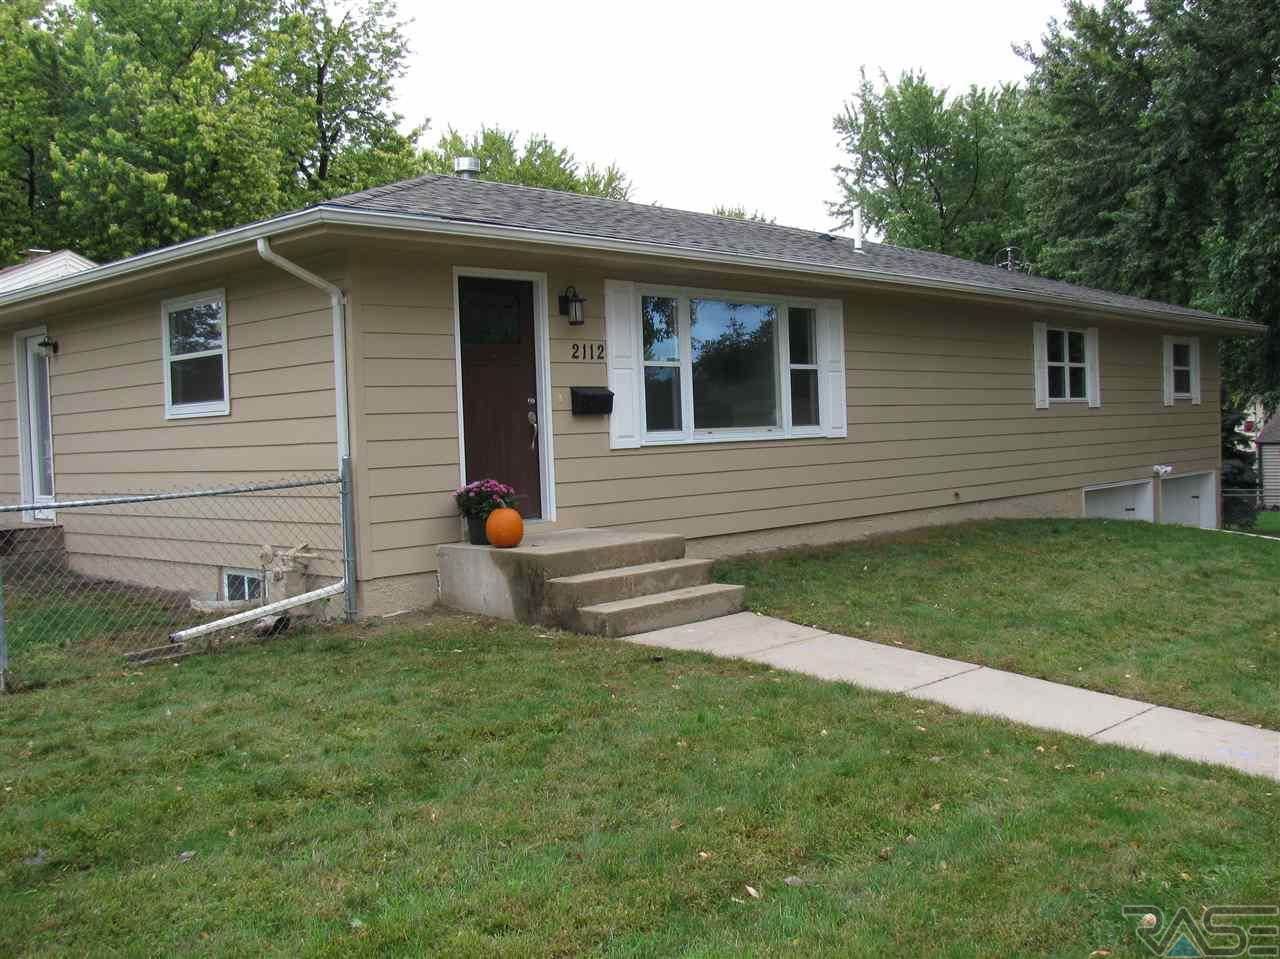 2112 W 31st St Sioux Falls Sd 57105 Minnehaha County Real Estate